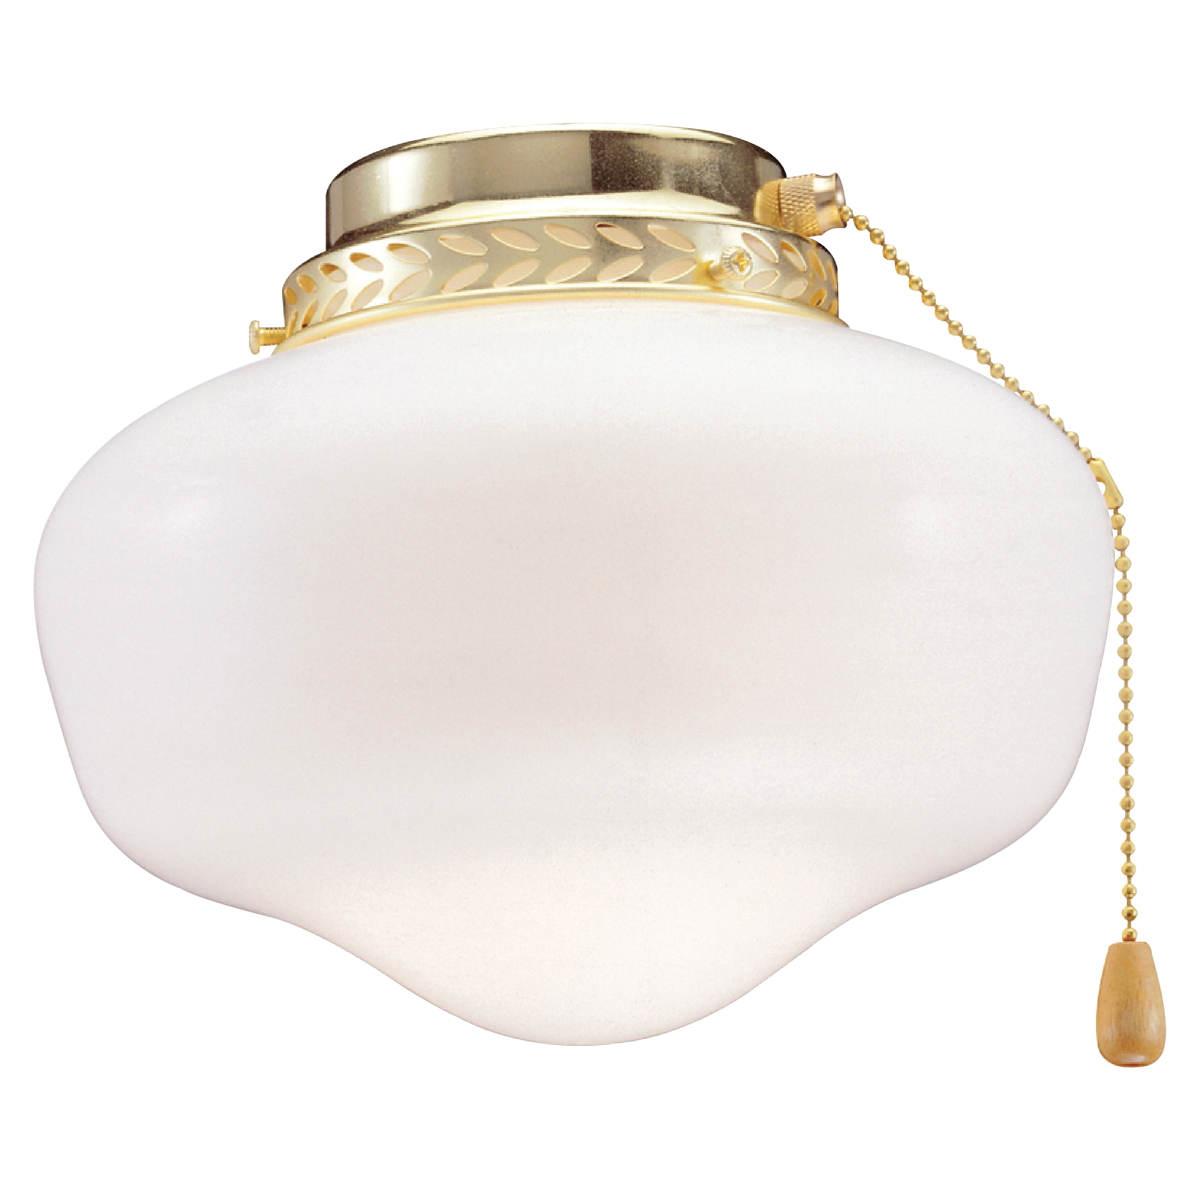 Picture of Boston Harbor CF-9SLK-PB Schoolhouse Light Kit, Opal Glass, Polished Brass, Polished Brass, Color Box